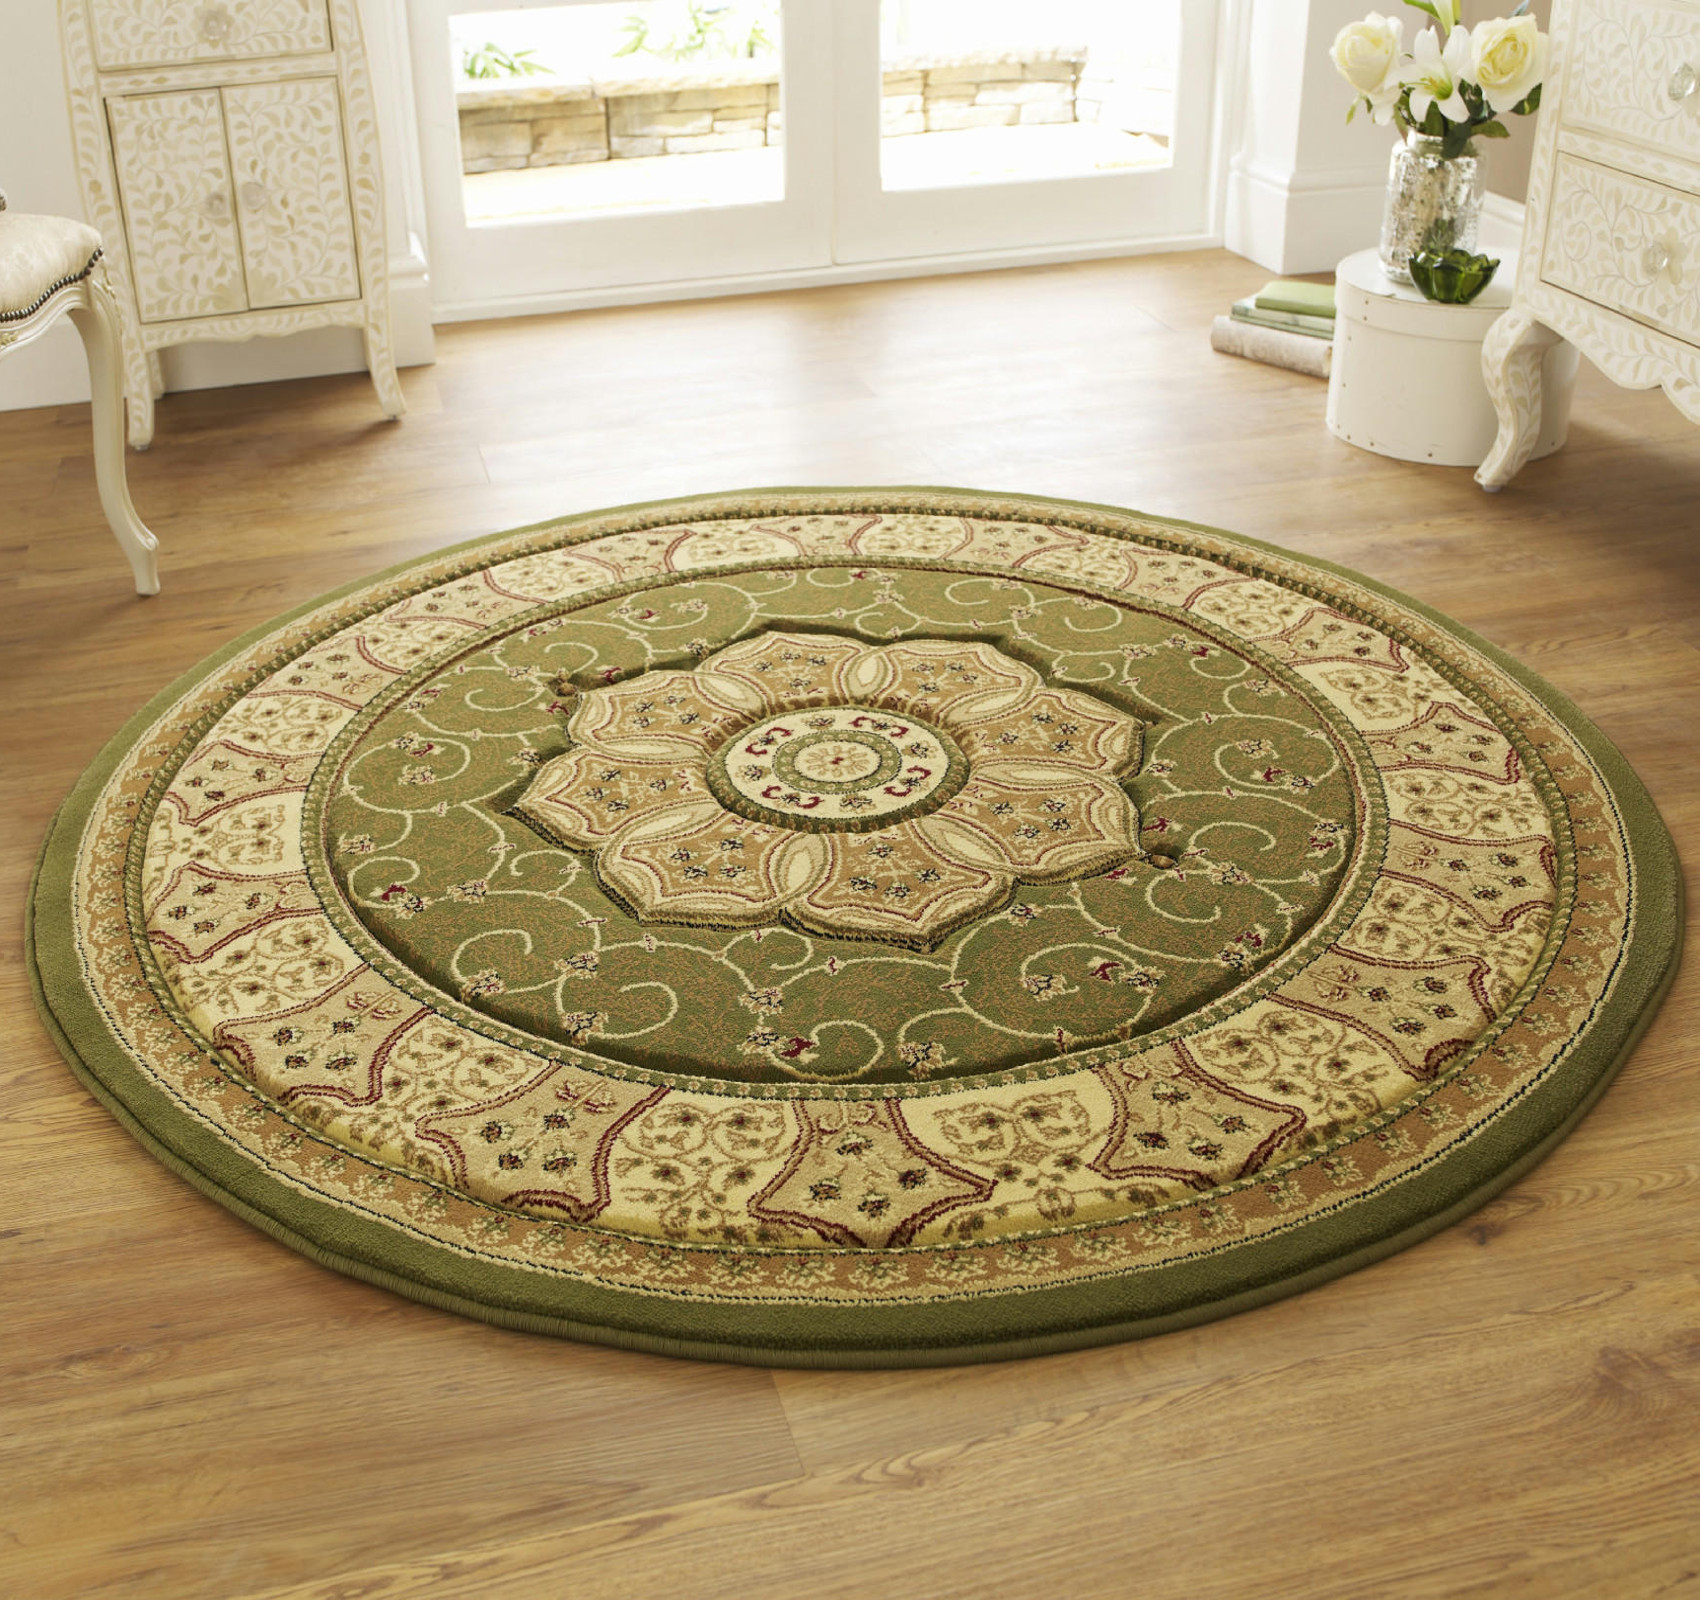 Wool Look Traditional Floral Swirl Pattern Rug Classic